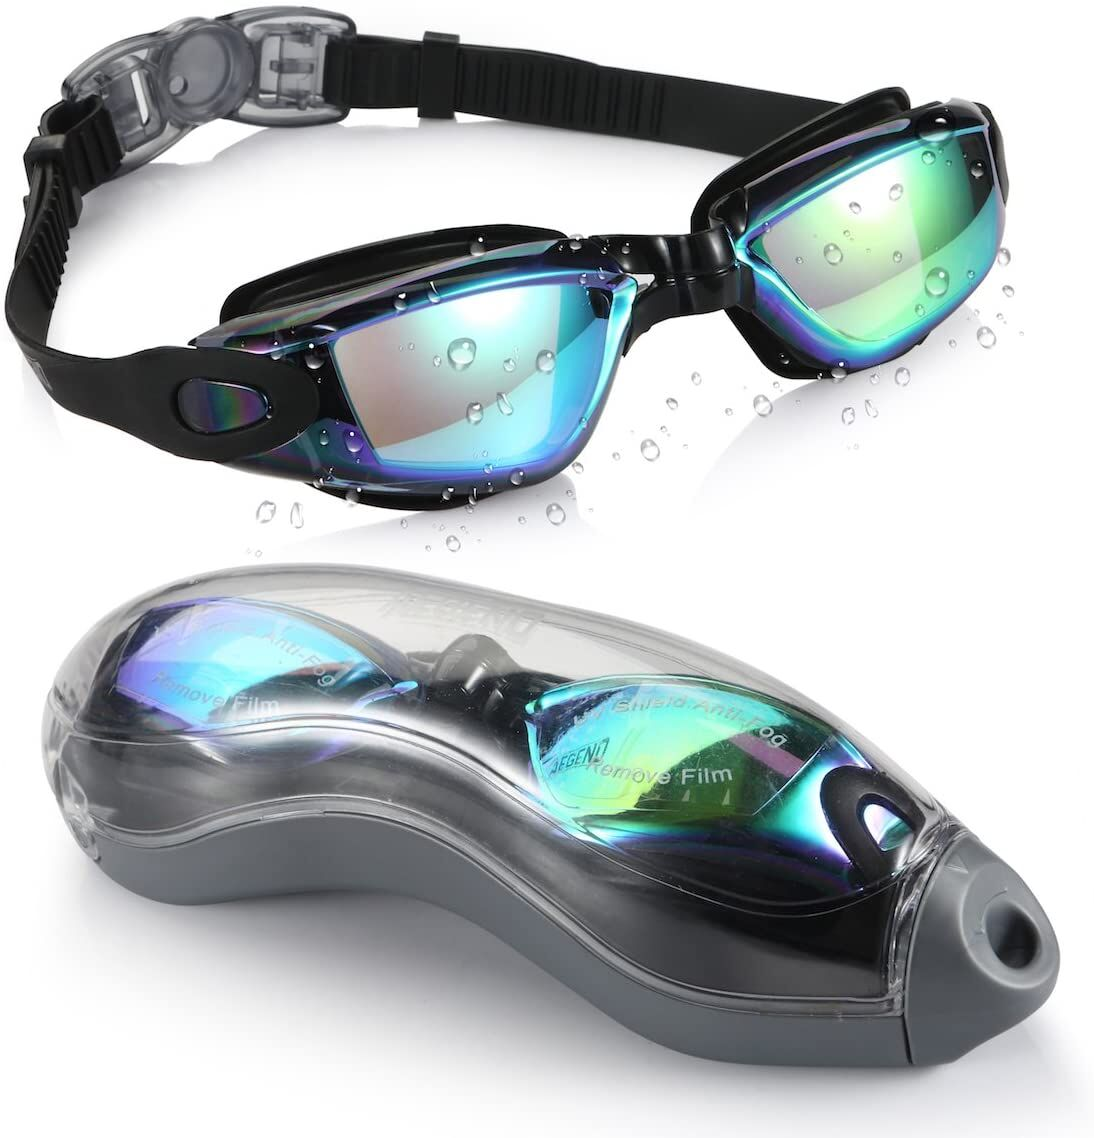 Just saw this on Amazon: Aegend Swim #Goggles, Swimming Goggles No Leaking Anti Fog UV Protection Triathlon #Swim Goggles with Free Protection Case for Adult Men Women Youth Kids Child, Multiple Choice by Aegend for $12.99 https://amzn.to/2NyF4PS @amazonpic.twitter.com/6d4zrqrbtw